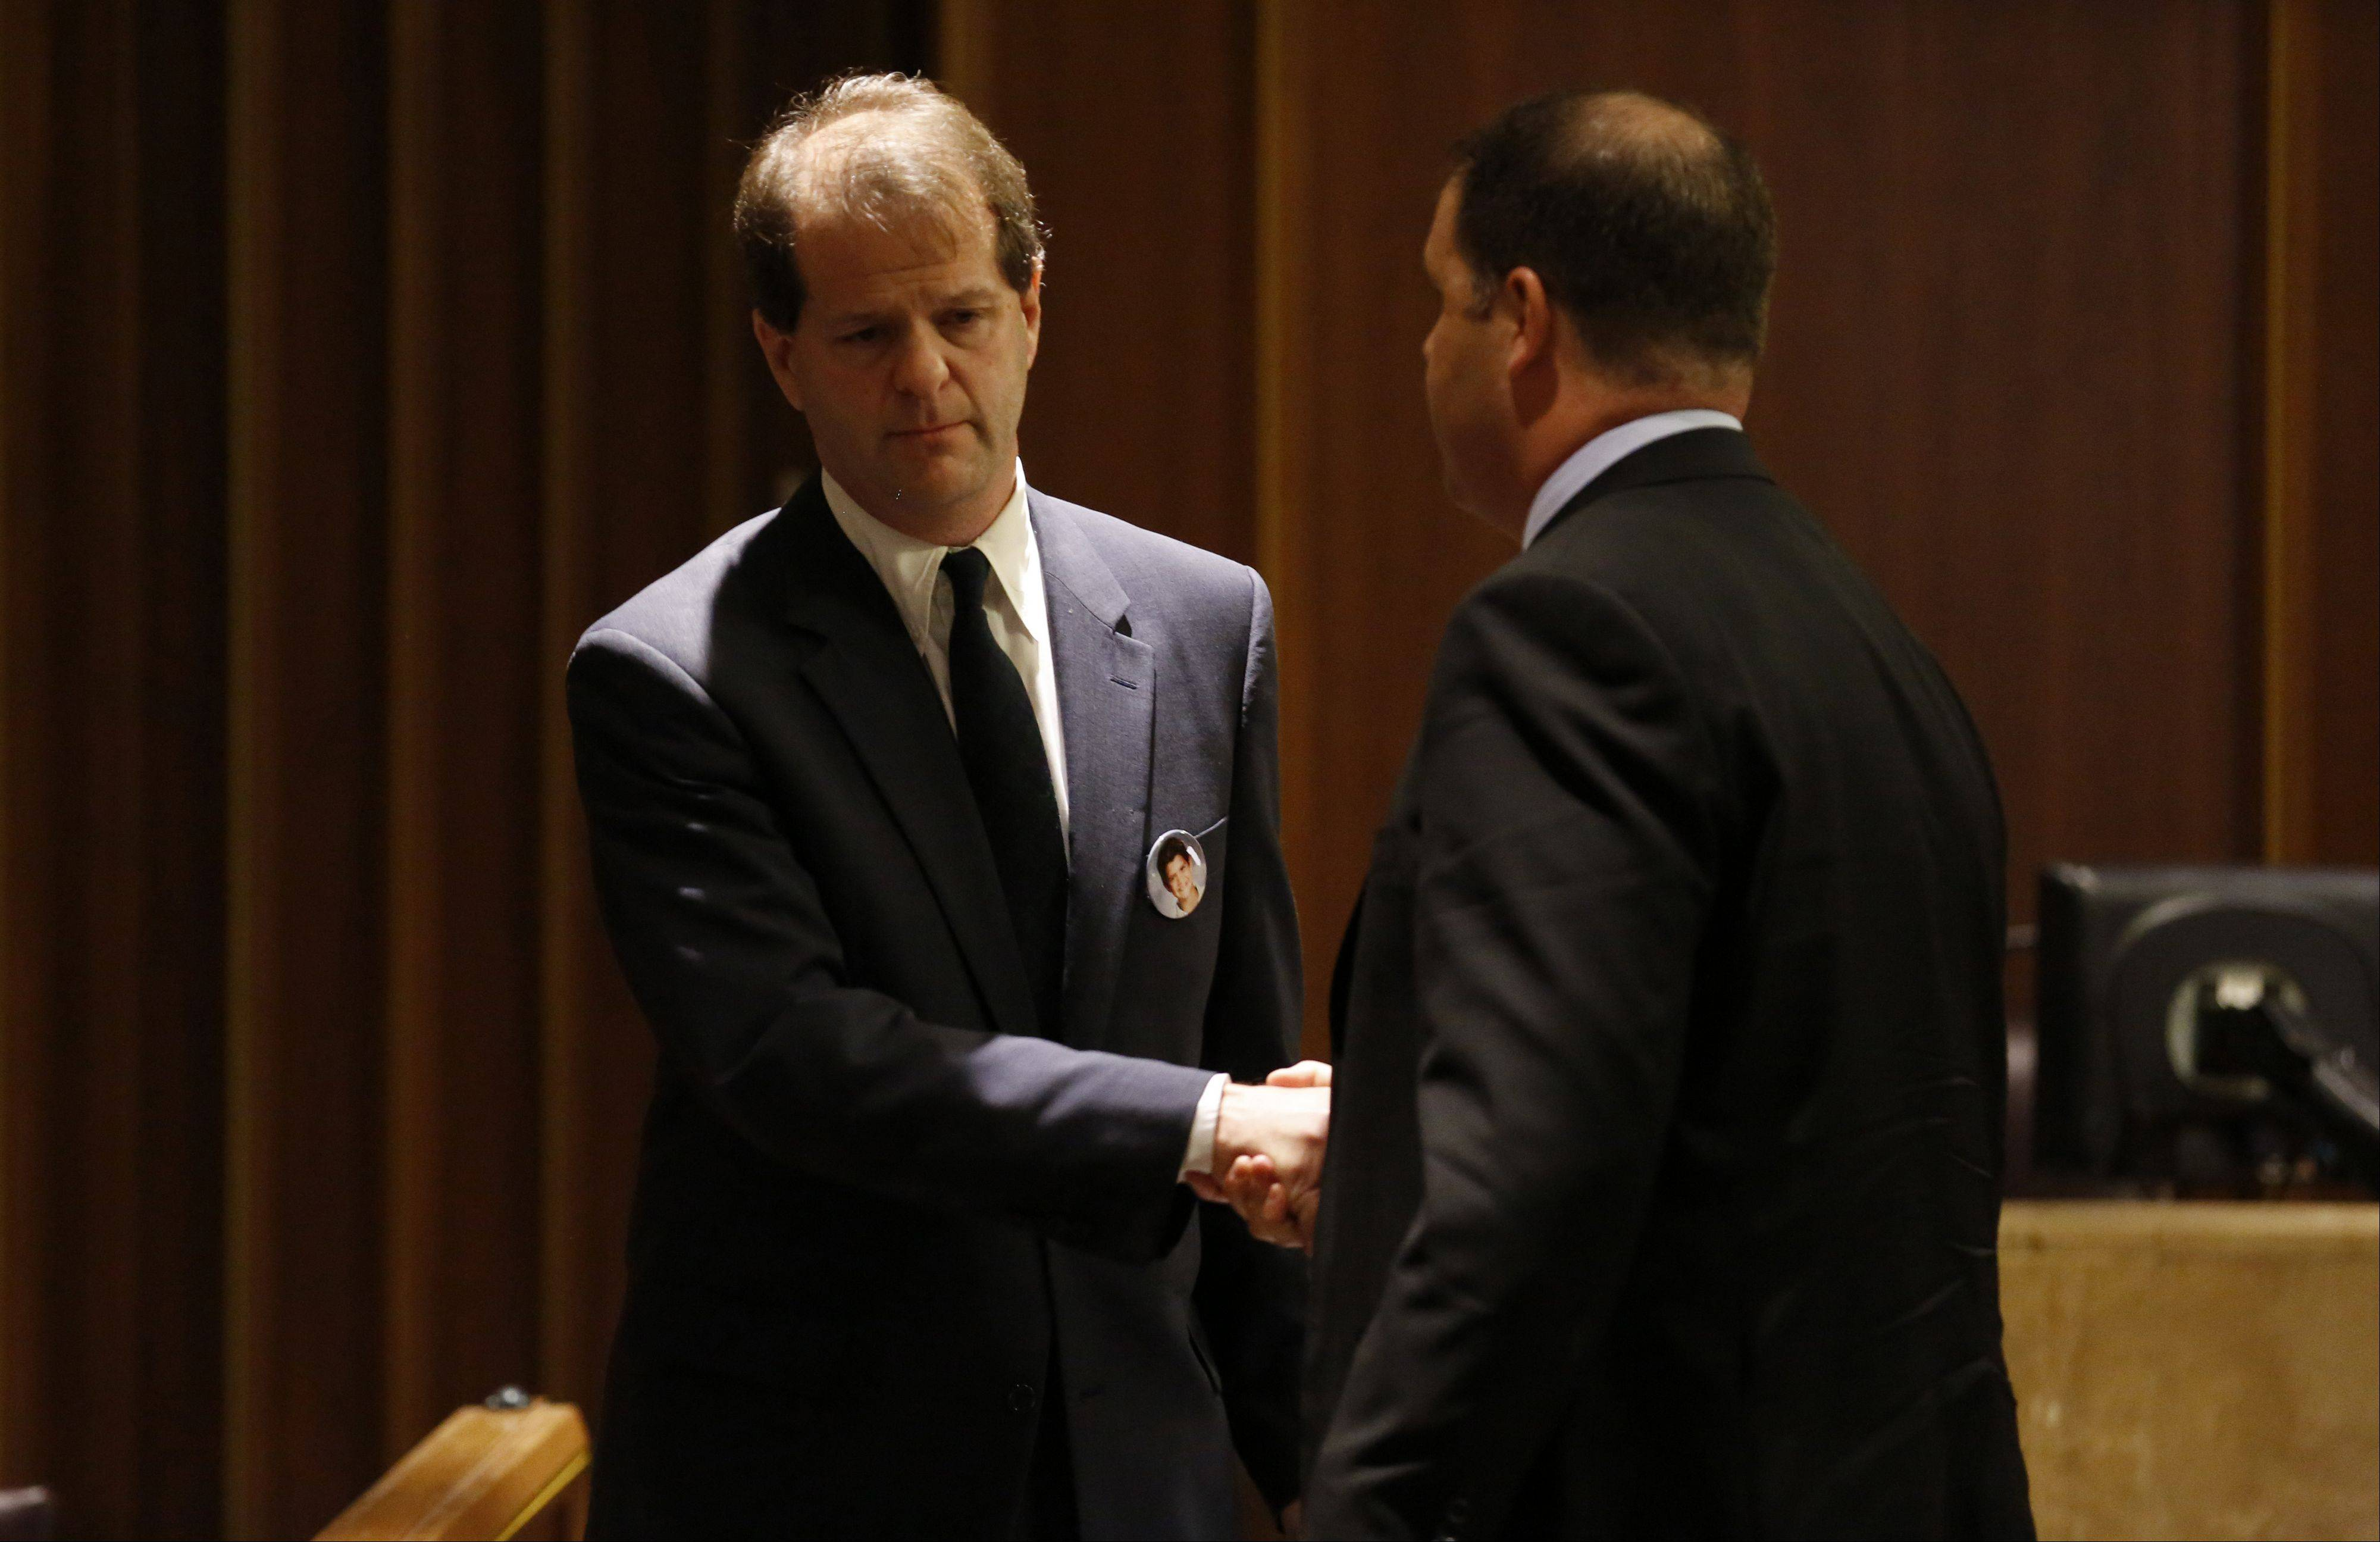 POOL/Chicago Tribune, Stacey WescottJim Borcia, father of Tony Borcia, shakes hands with prosecutor Ari Fisz following Borcia's emotional victim impact statement Thursday at the sentencing hearing for David Hatyina. The Bartlett man pleaded guilty to a drug and alcohol charge in the boating crash that killed the 10-year-old boy last summer.